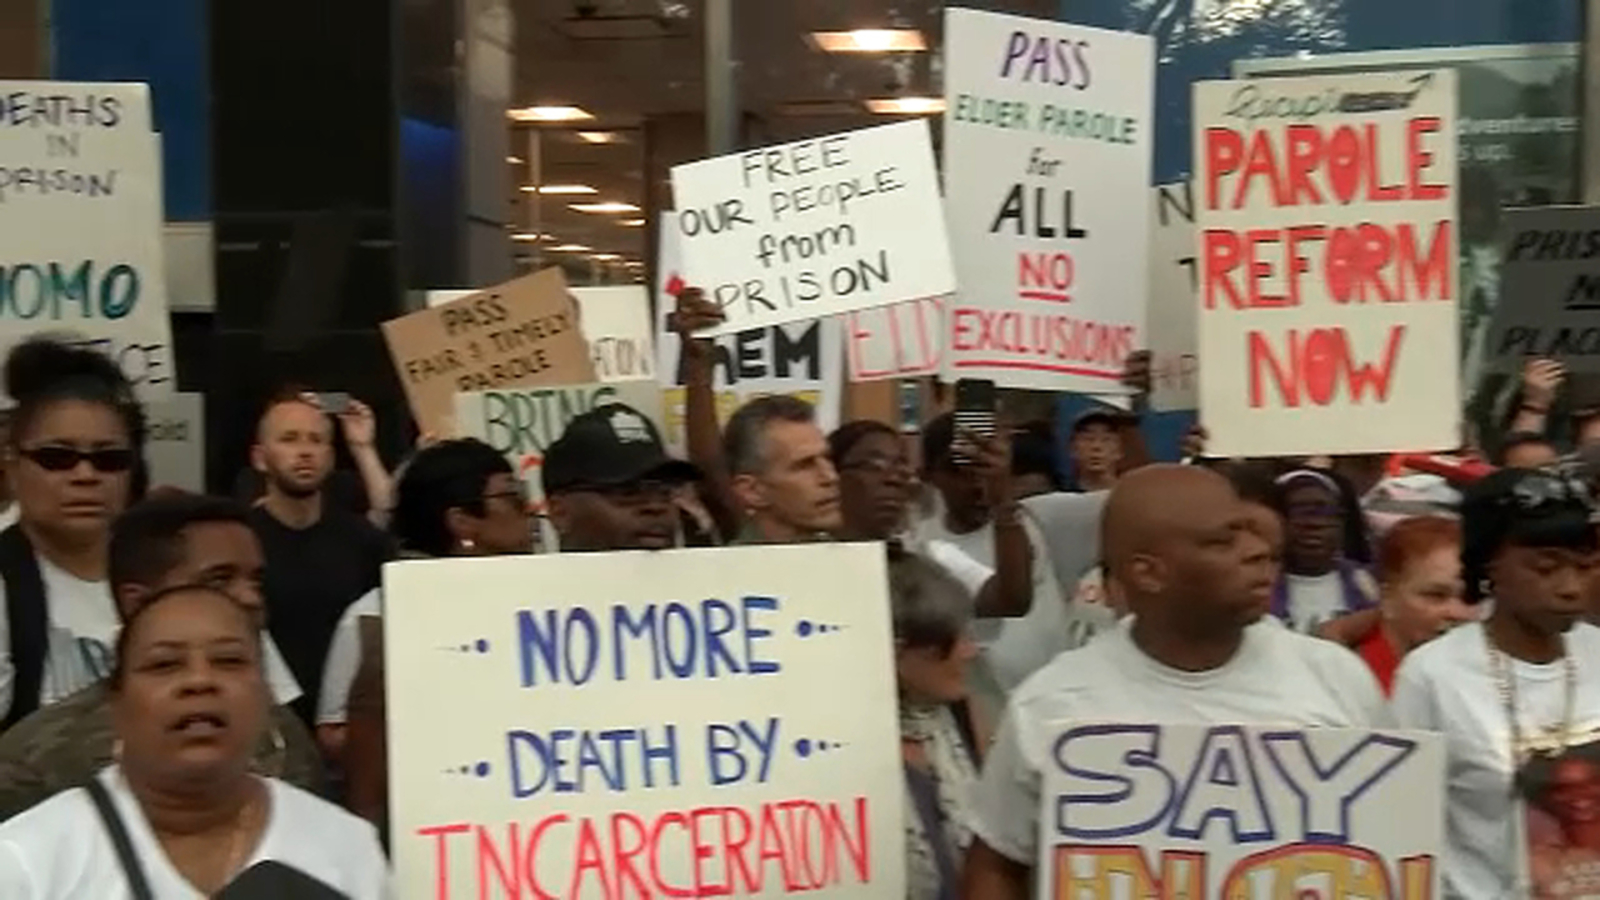 Rally held to push for bill giving elderly inmates a chance for parole